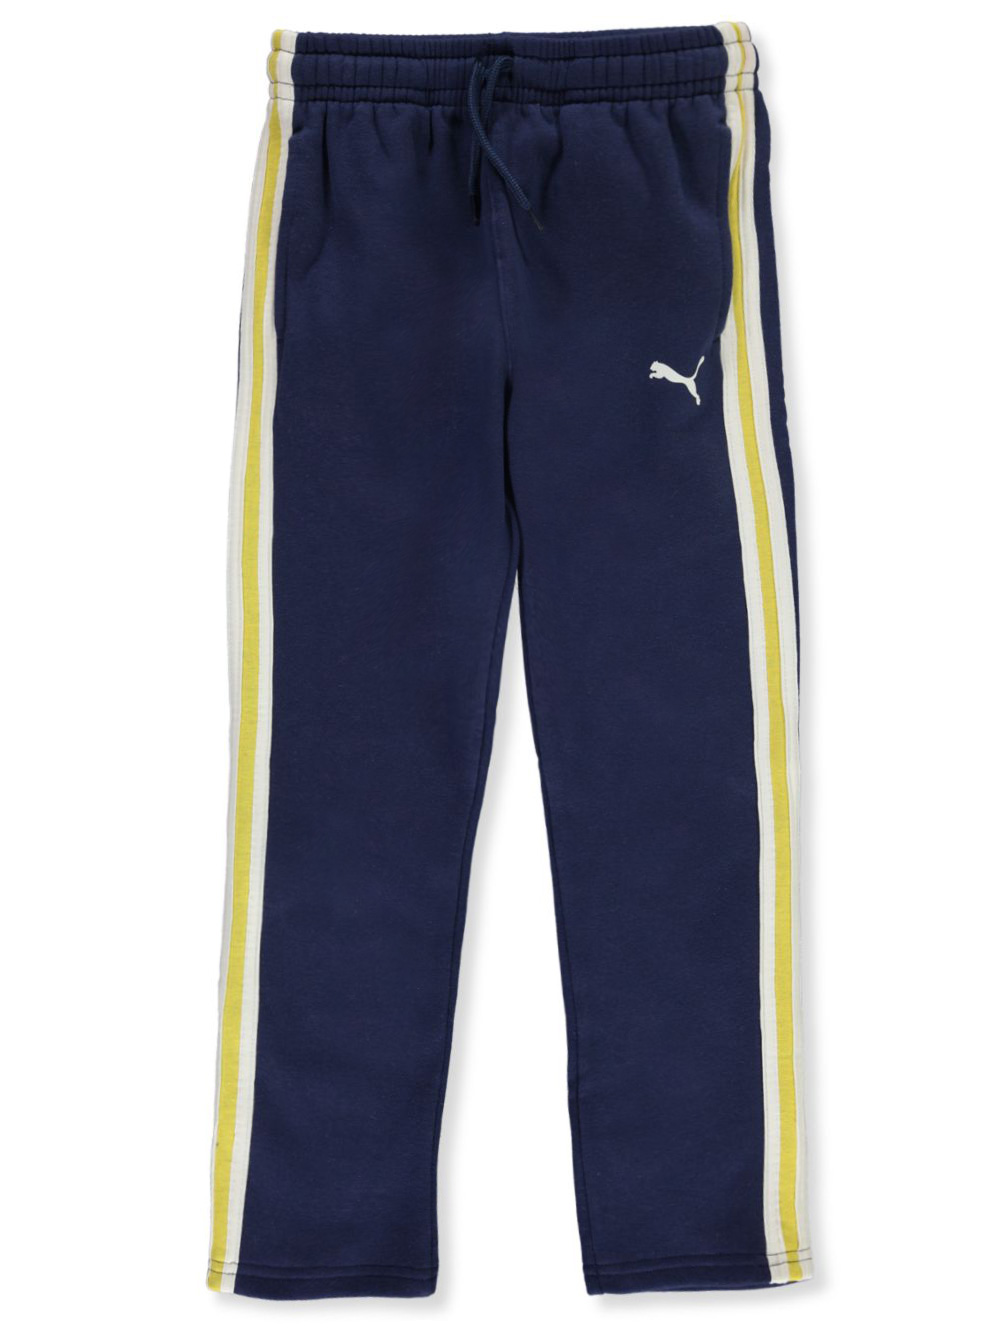 Size 16-18 Sweatpants for Boys